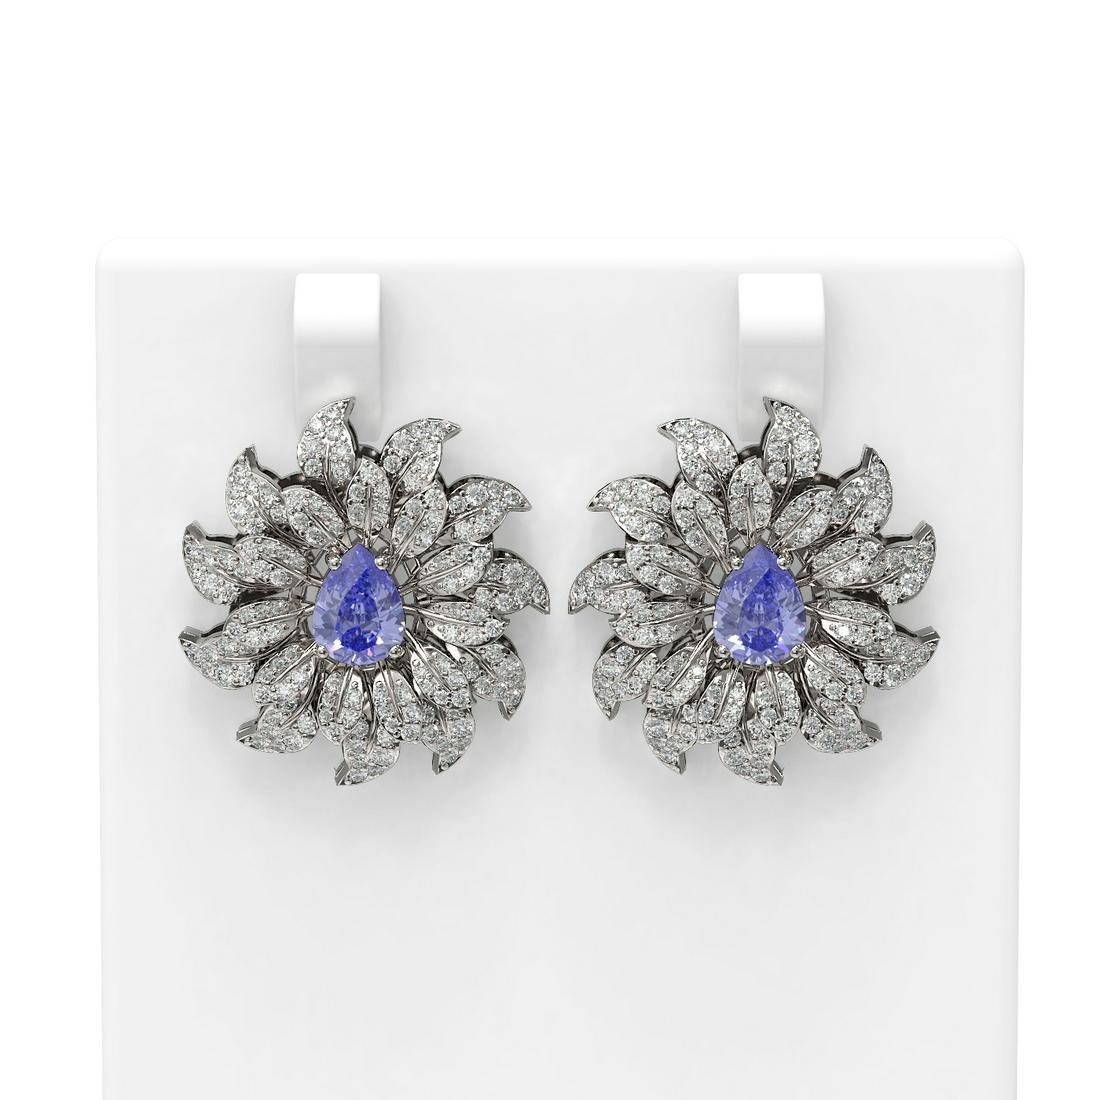 5.87 ctw Tanzanite & Diamond Earrings 18K White Gold -